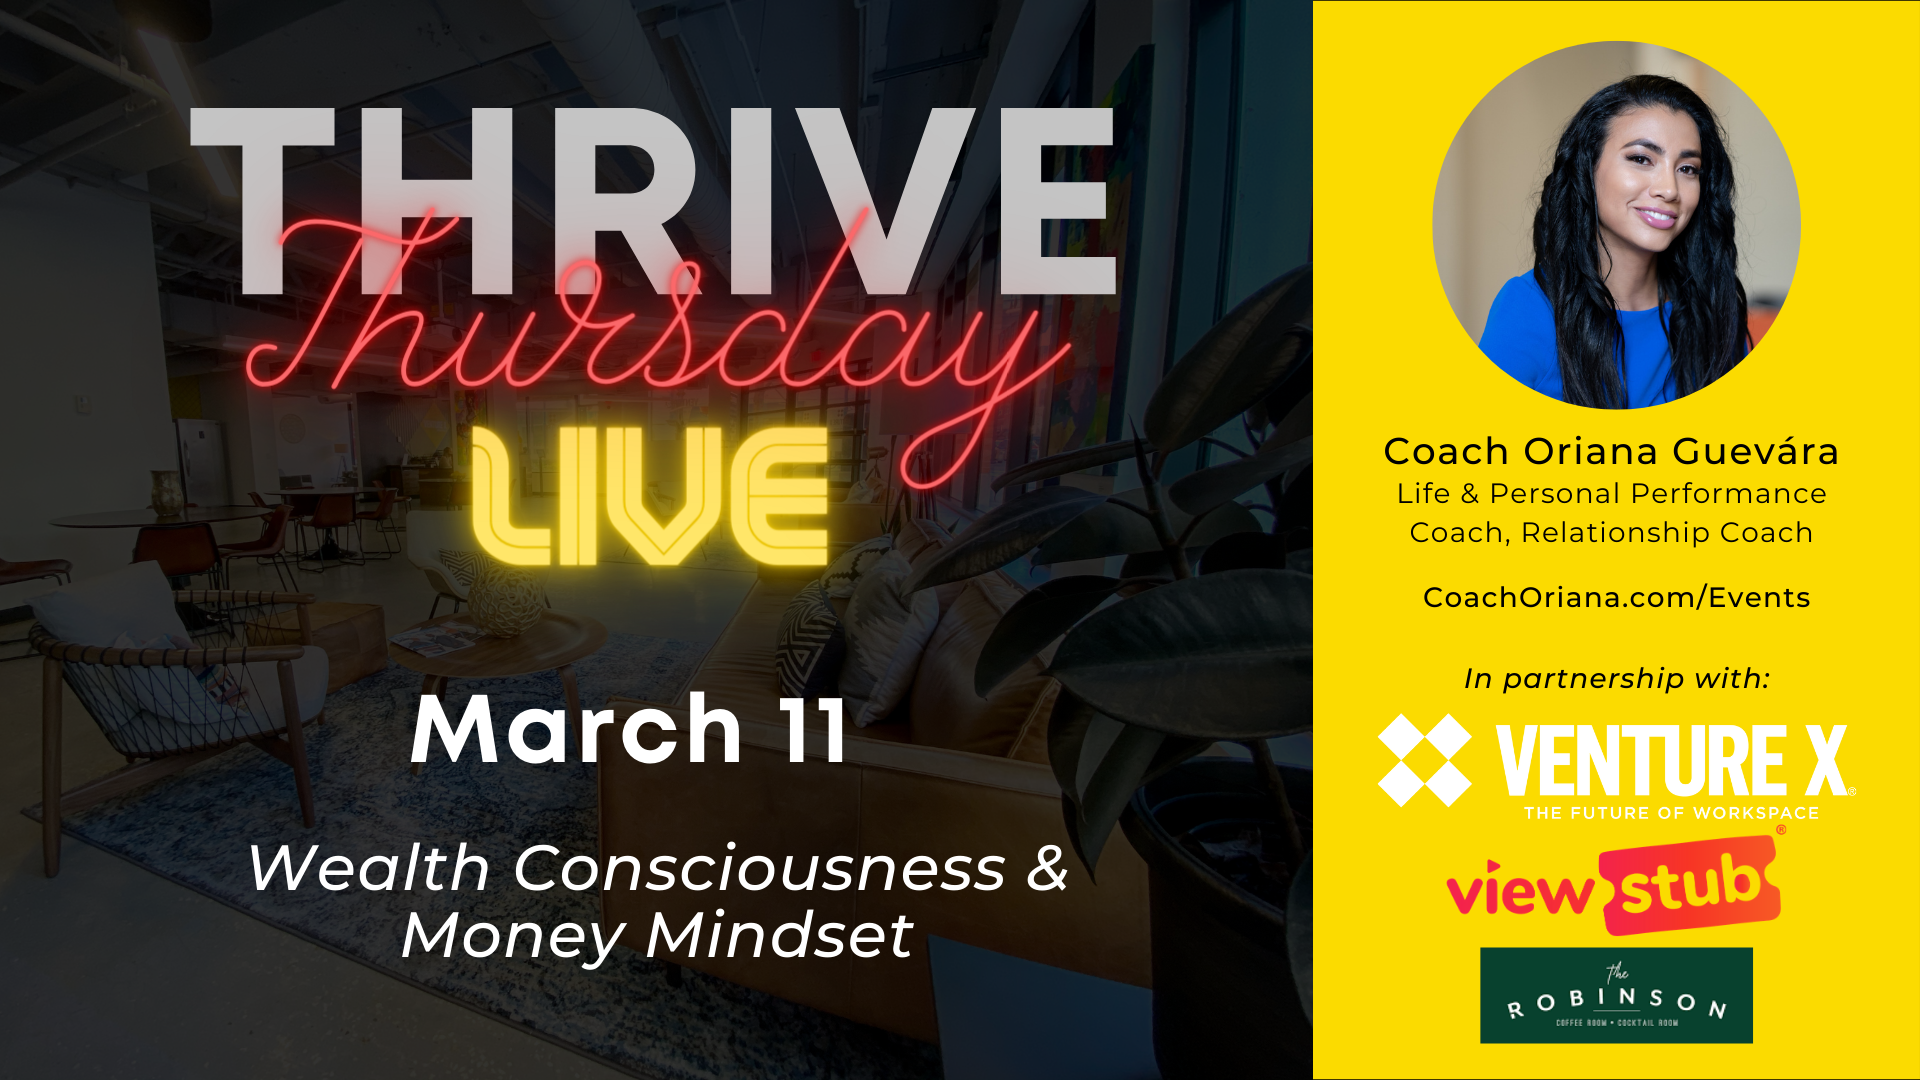 Photo for Thrive Thursday LIVE March @ Venture X Downtown Orlando on ViewStub